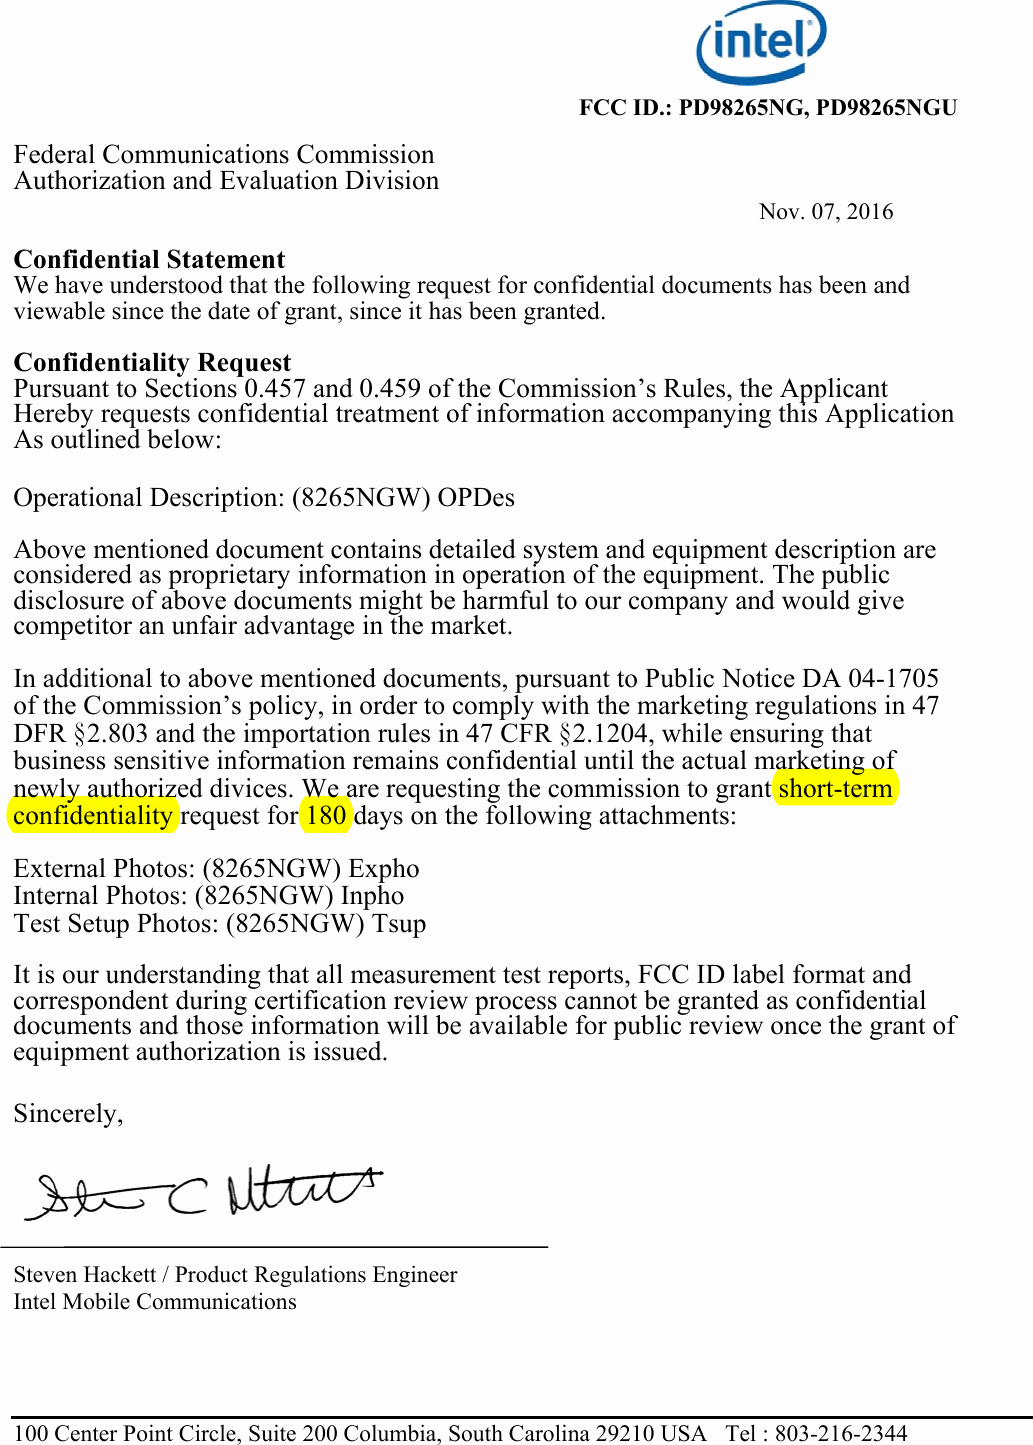 Confidential Notice for Documents Inspirational 8265ngu Intel Dual Band Wireless Ac 8265 Cover Letter